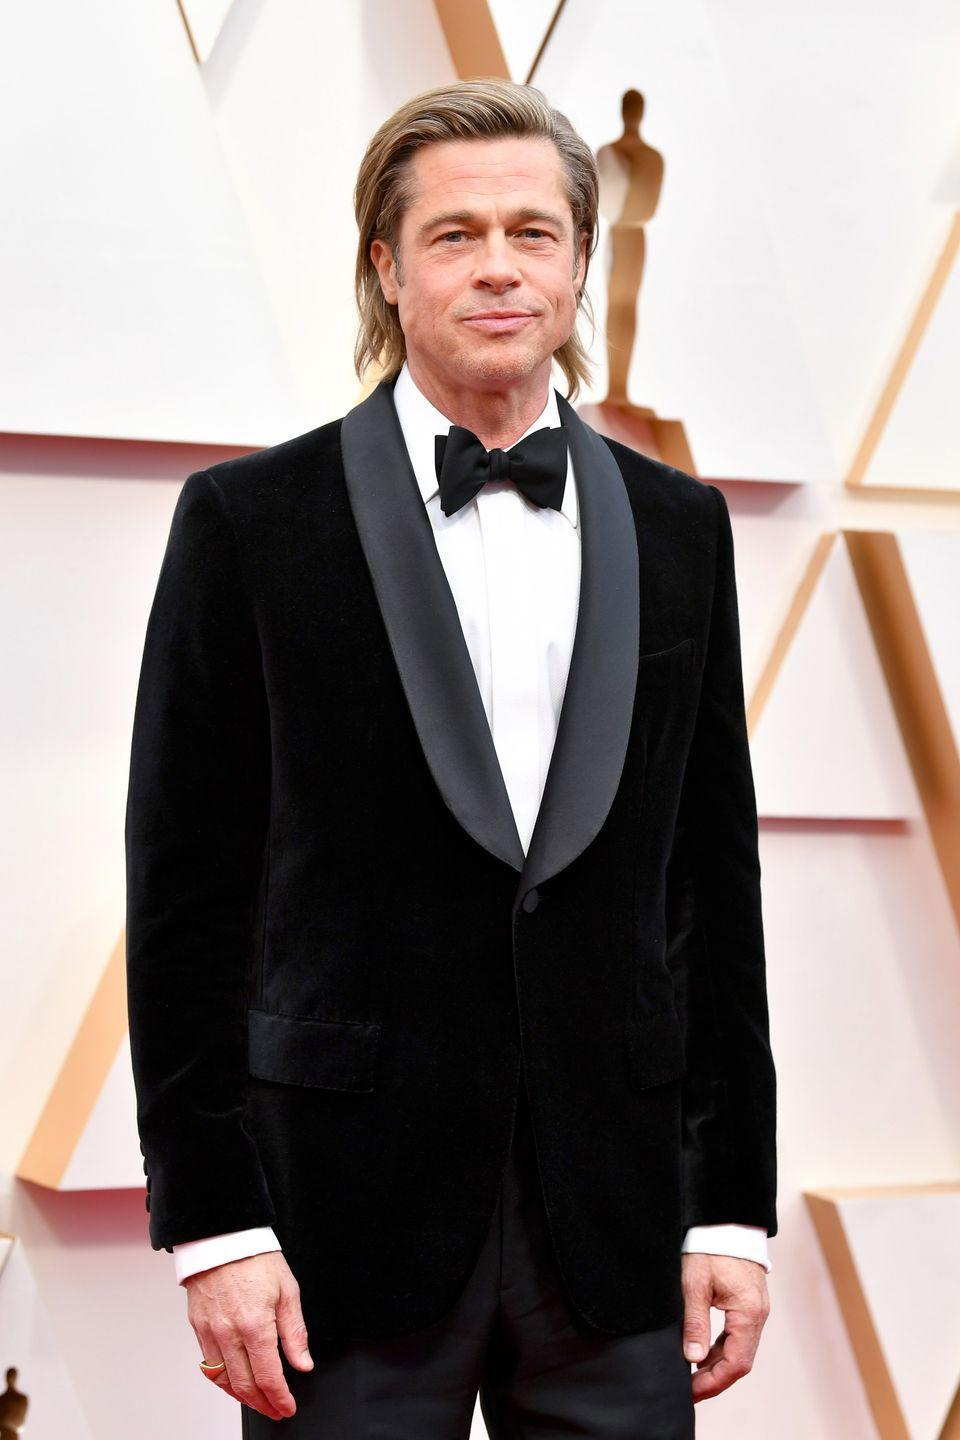 """<p>Before Brad Pitt was, well, Brad Pitt, the Missouri native pursued a degree in journalism at the University of Missouri and was a member of <a href=""""https://www.popsugar.com/celebrity/photo-gallery/26291730/image/26311598/He-Frat-Boy"""" rel=""""nofollow noopener"""" target=""""_blank"""" data-ylk=""""slk:Sigma Chi"""" class=""""link rapid-noclick-resp"""">Sigma Chi</a>. The actor dropped out with <a href=""""https://www.hercampus.com/culture/entertainment/brad-pitt-talks-dropping-out-college#:~:text=In%20an%20interview%20with%20talk,for%20myself%2C%22%20he%20said."""" rel=""""nofollow noopener"""" target=""""_blank"""" data-ylk=""""slk:only a few credits to go"""" class=""""link rapid-noclick-resp"""">only a few credits to go</a> to head to Hollywood. </p>"""